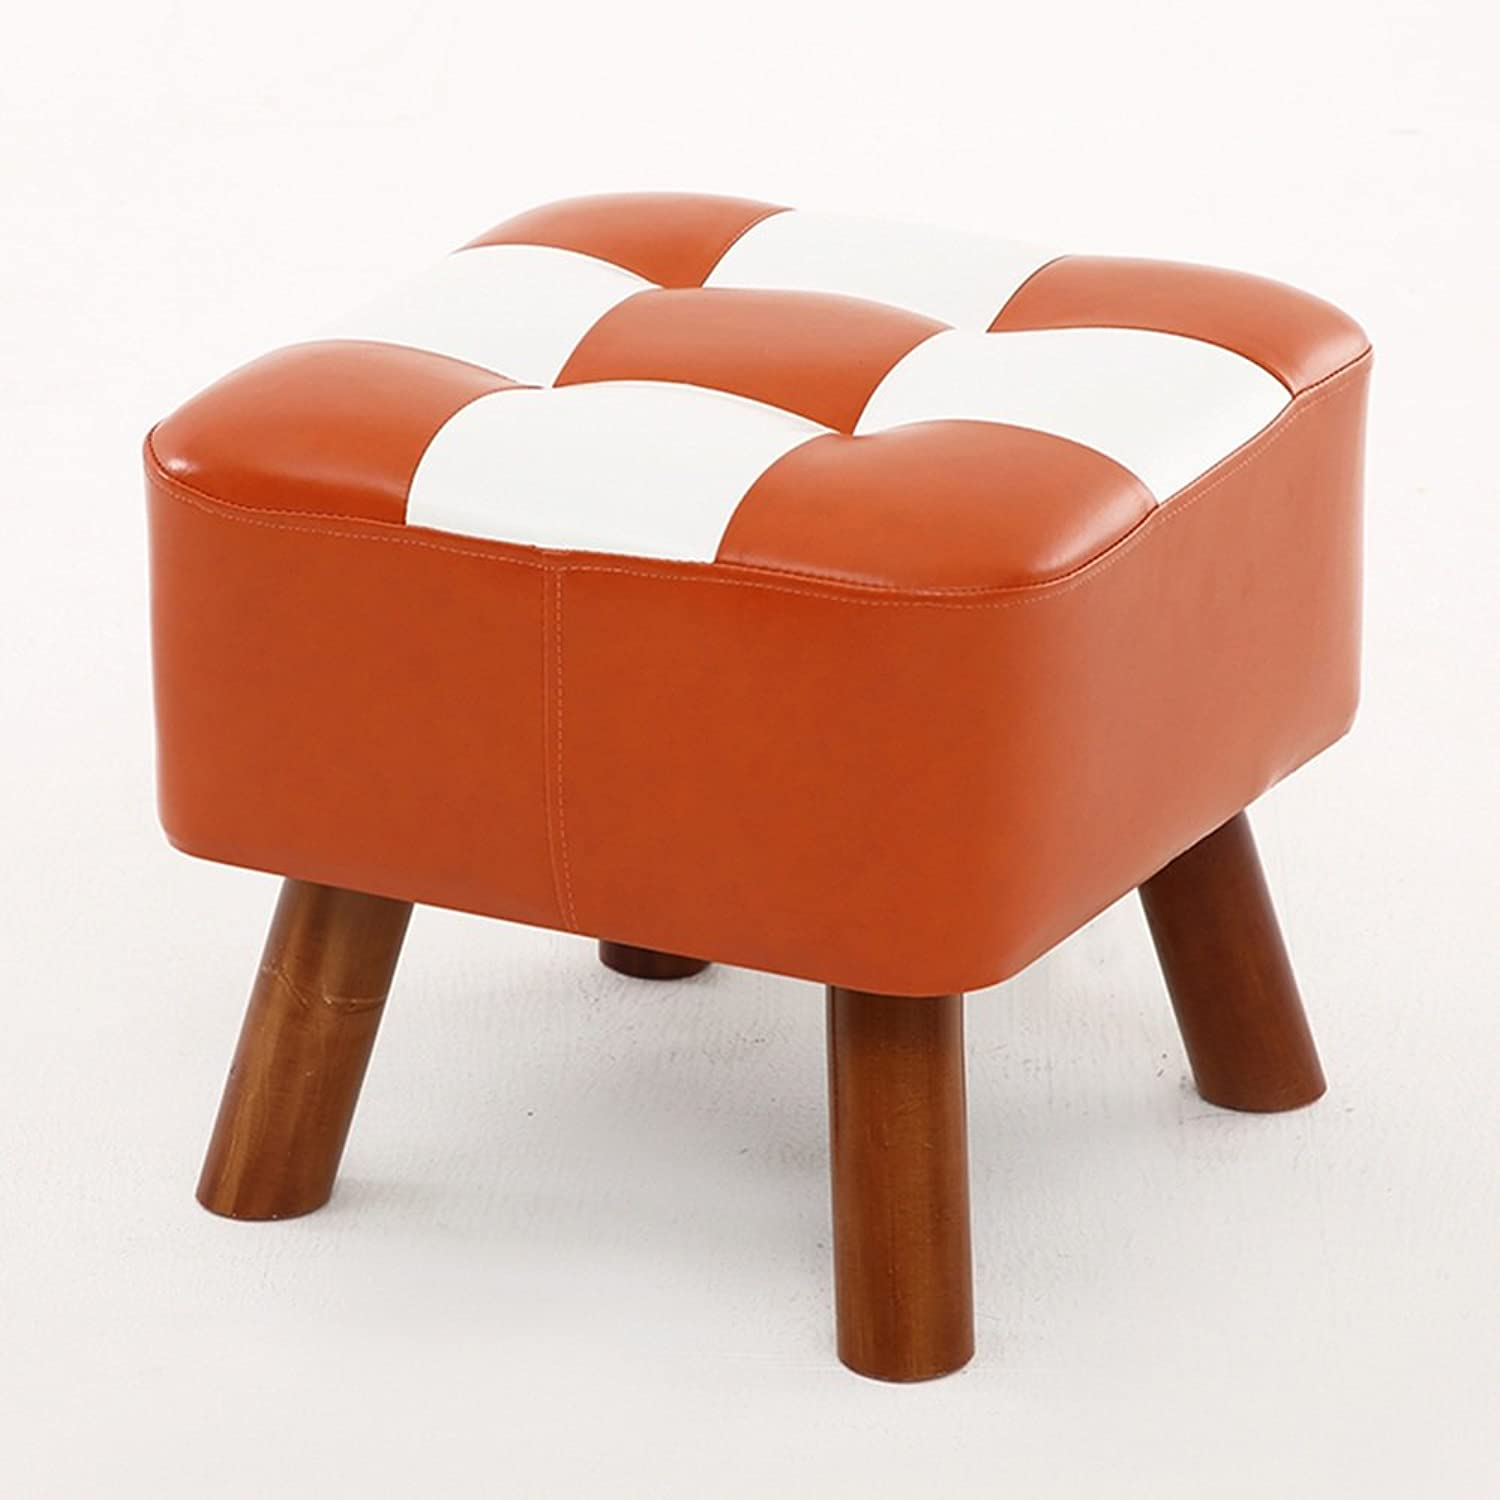 LJHA ertongcanyi Solid Wood Creative Stable Footstool Simple High Resilience Sofa Stool Bedroom Dressing Stool Doorway Square Changing shoes Stool (6 colors Optional) (color   D)